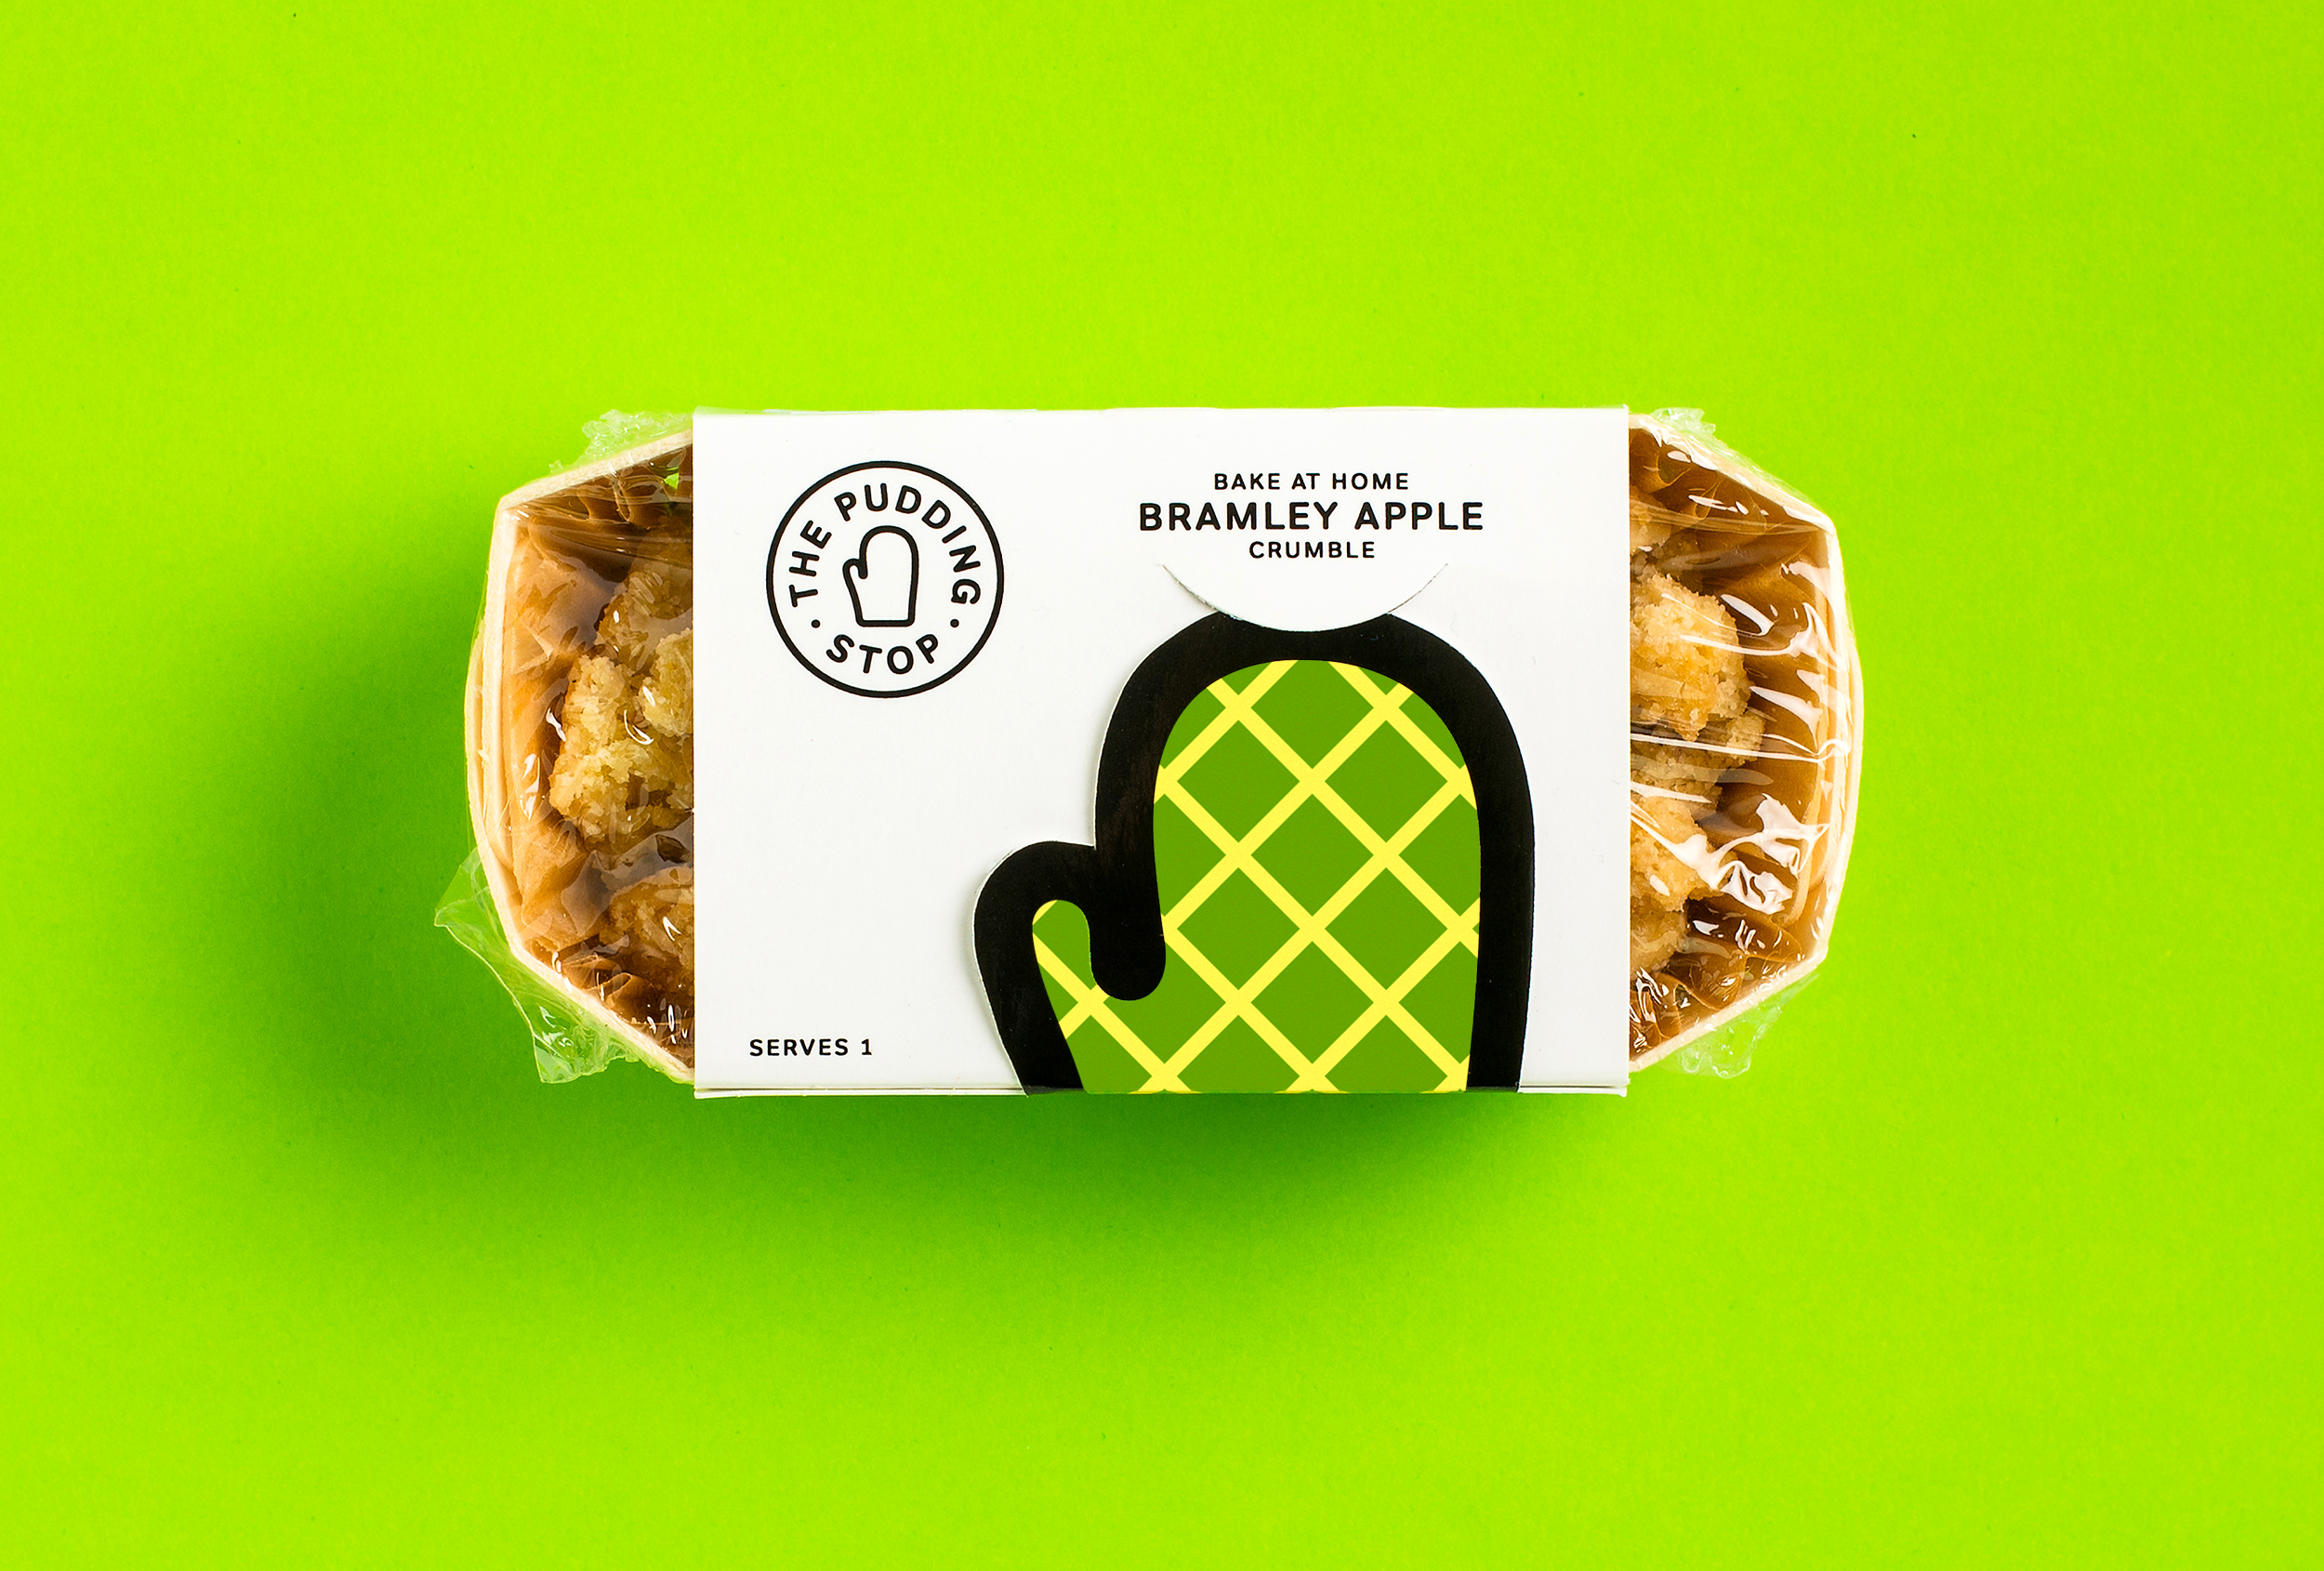 Branded packaging featuring a pop-up mitt graphic, designed by Distil Studio